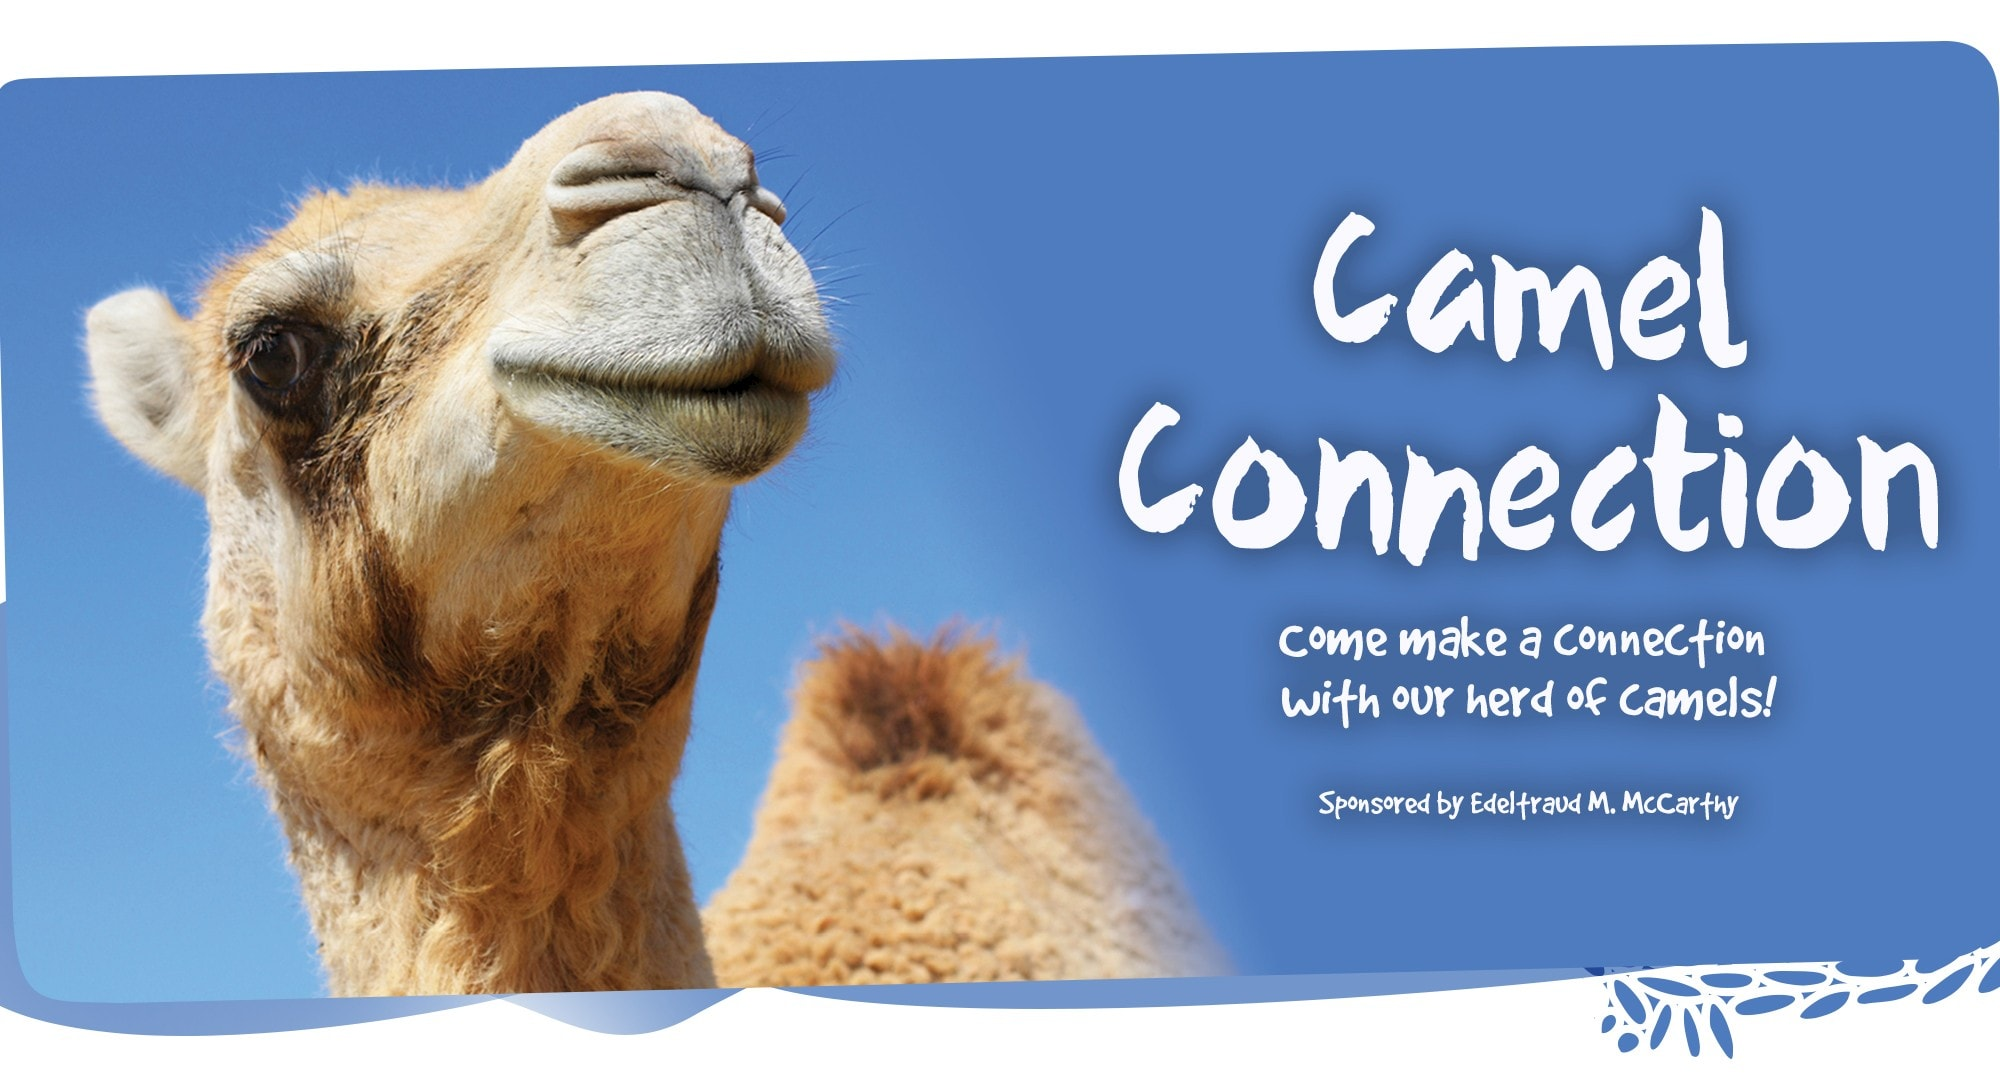 Come make a connection with The Living Desert's herd of camels